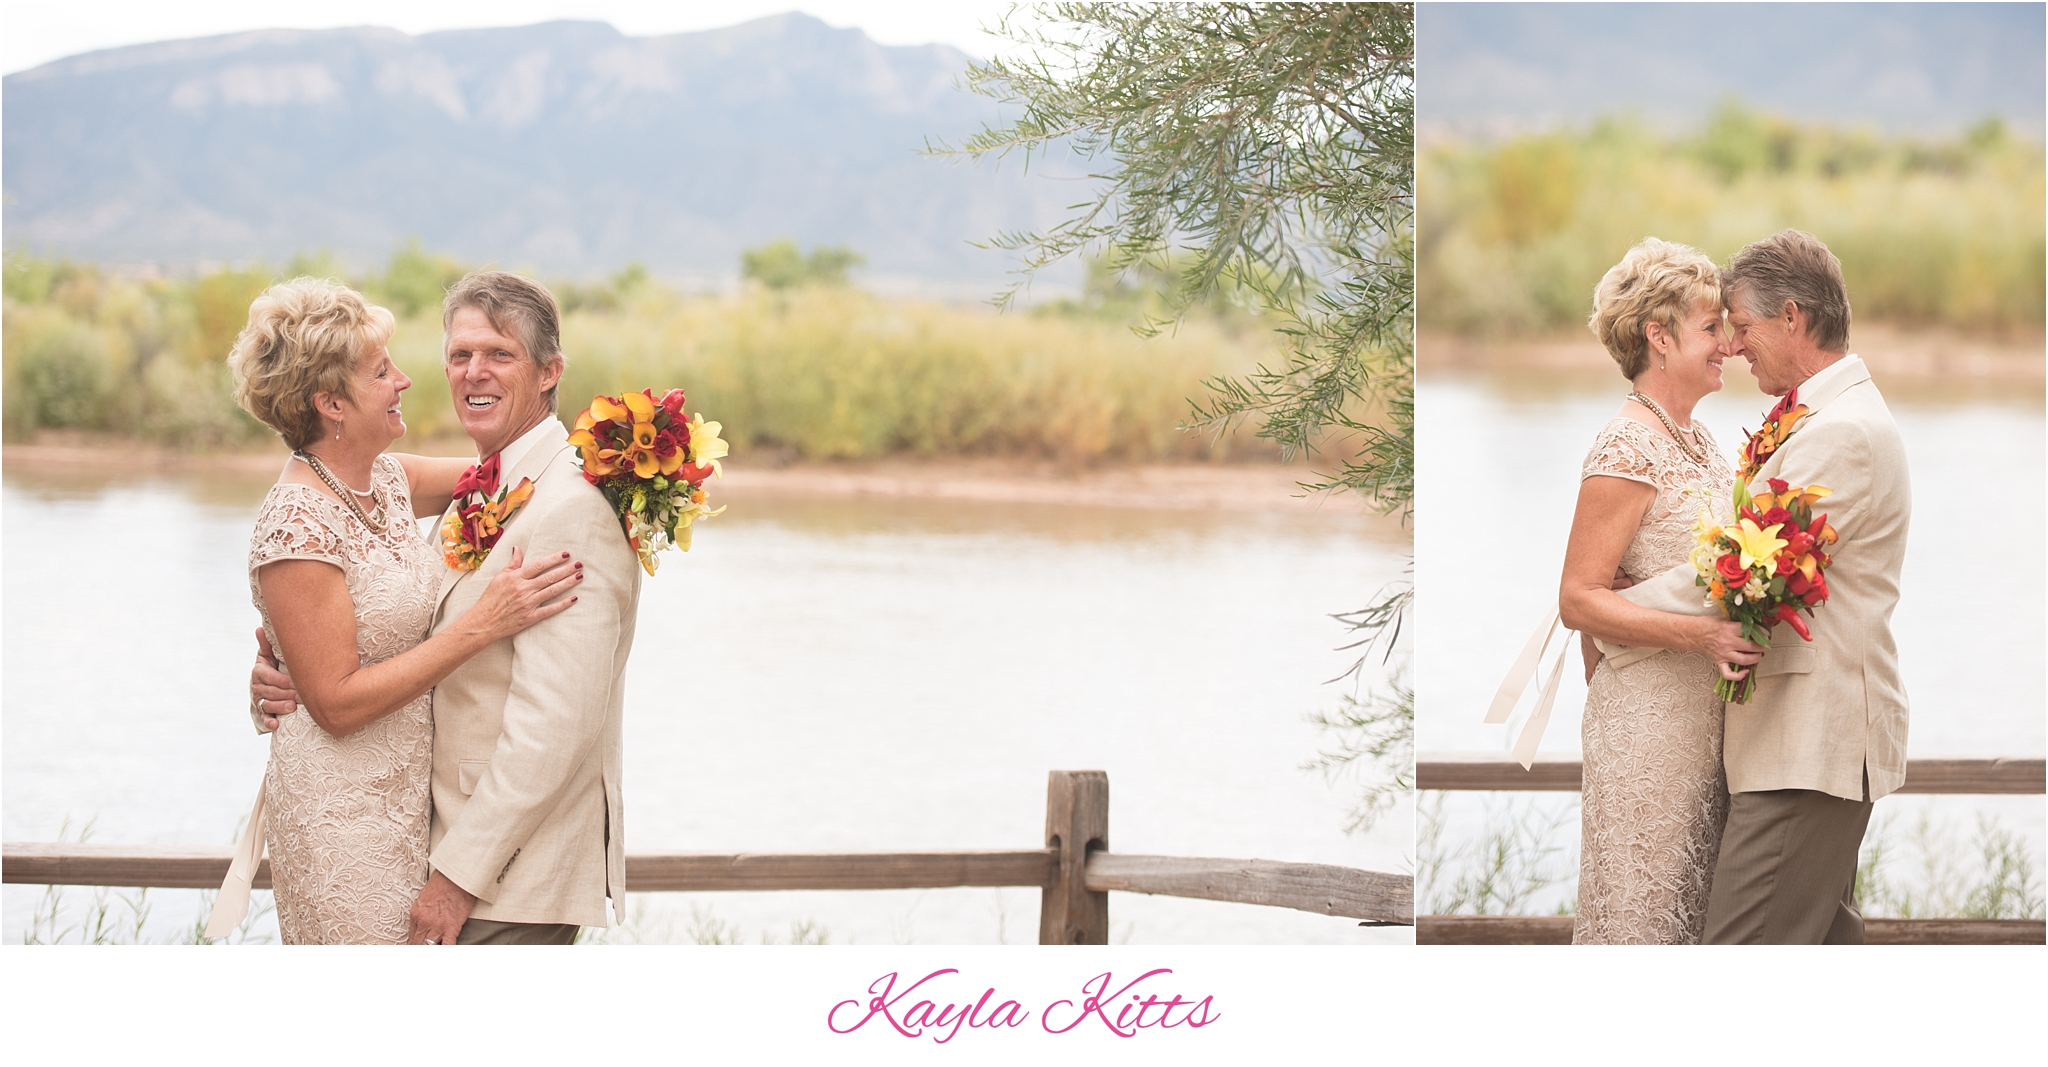 kayla kitts photography - albuquerque wedding photographer - albuquerque wedding photography - albuquerque venue - hyatt tamaya - hyatt tamaya wedding - new mexico wedding photographer_0050.jpg